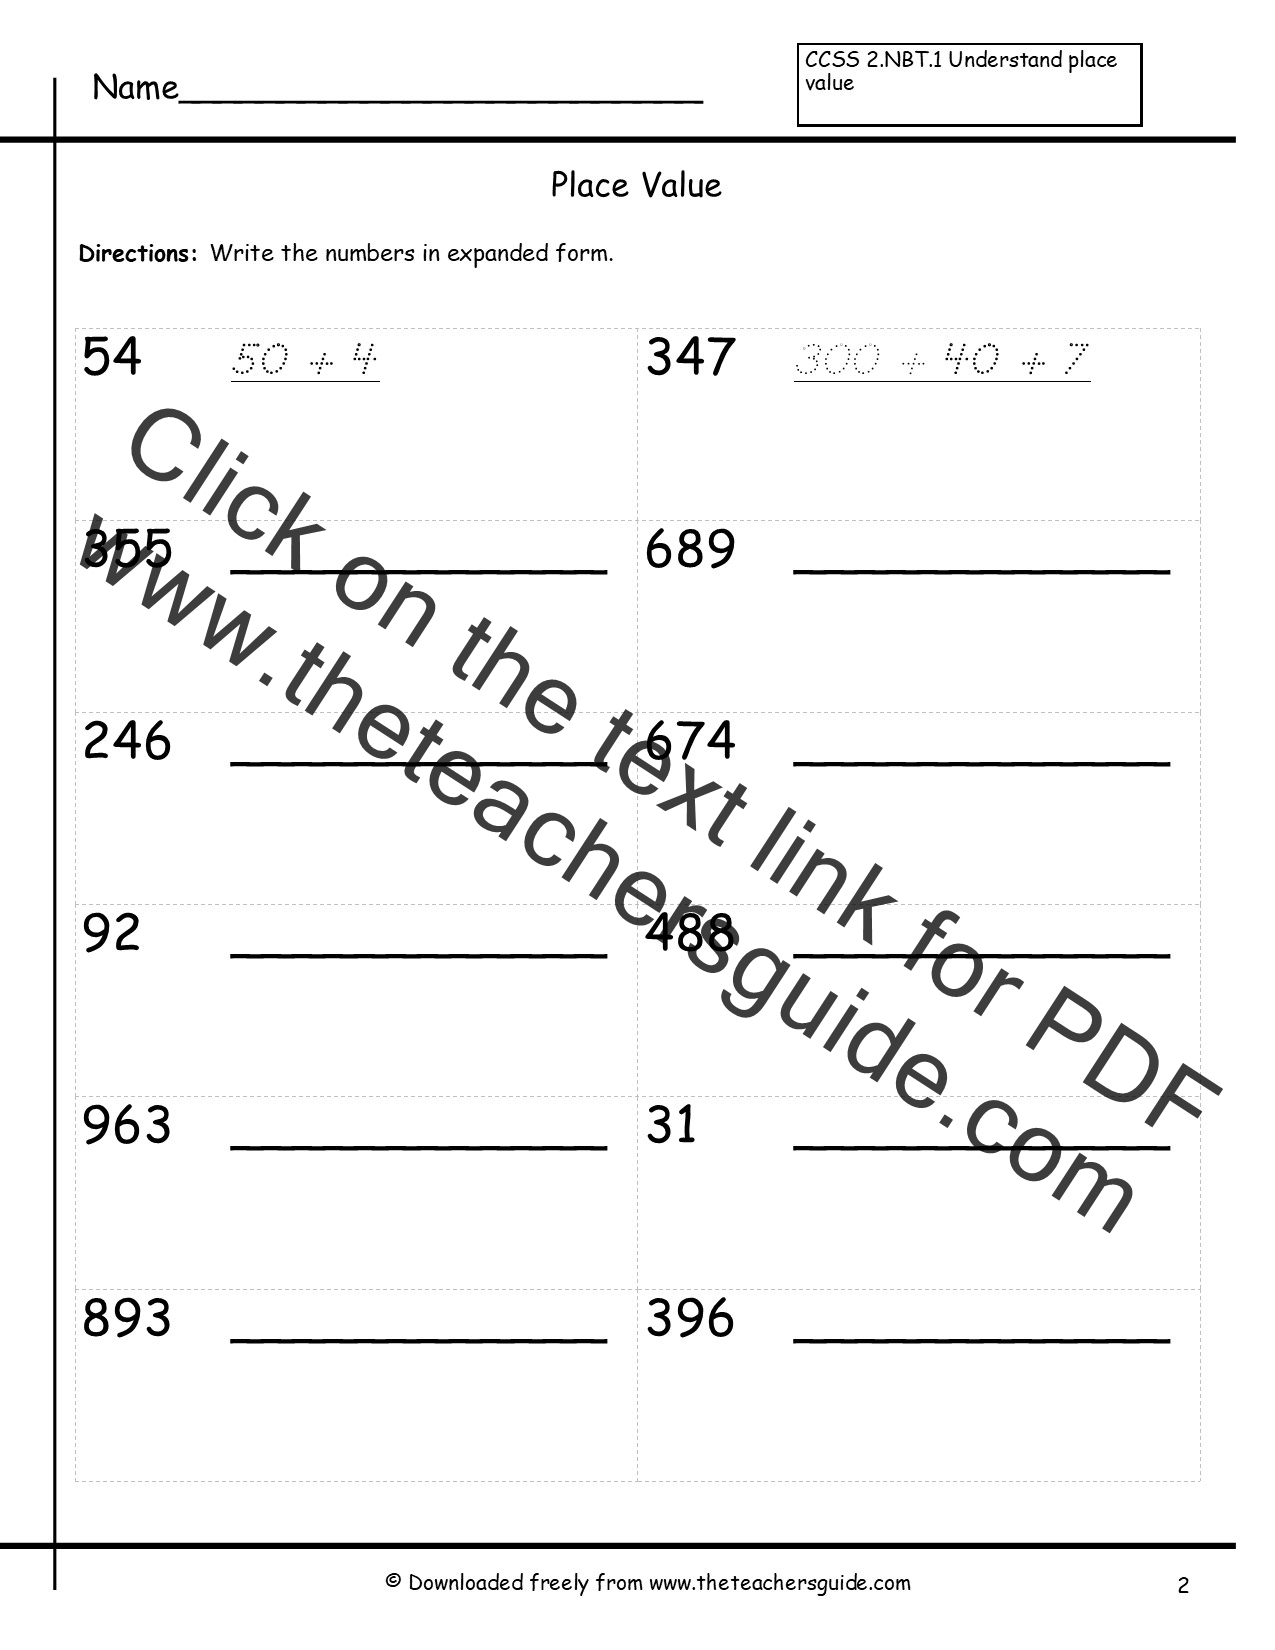 worksheet Expanded Form With Decimals decimal expanded form image collections example ideas writing decimals in images place value scalien numbers